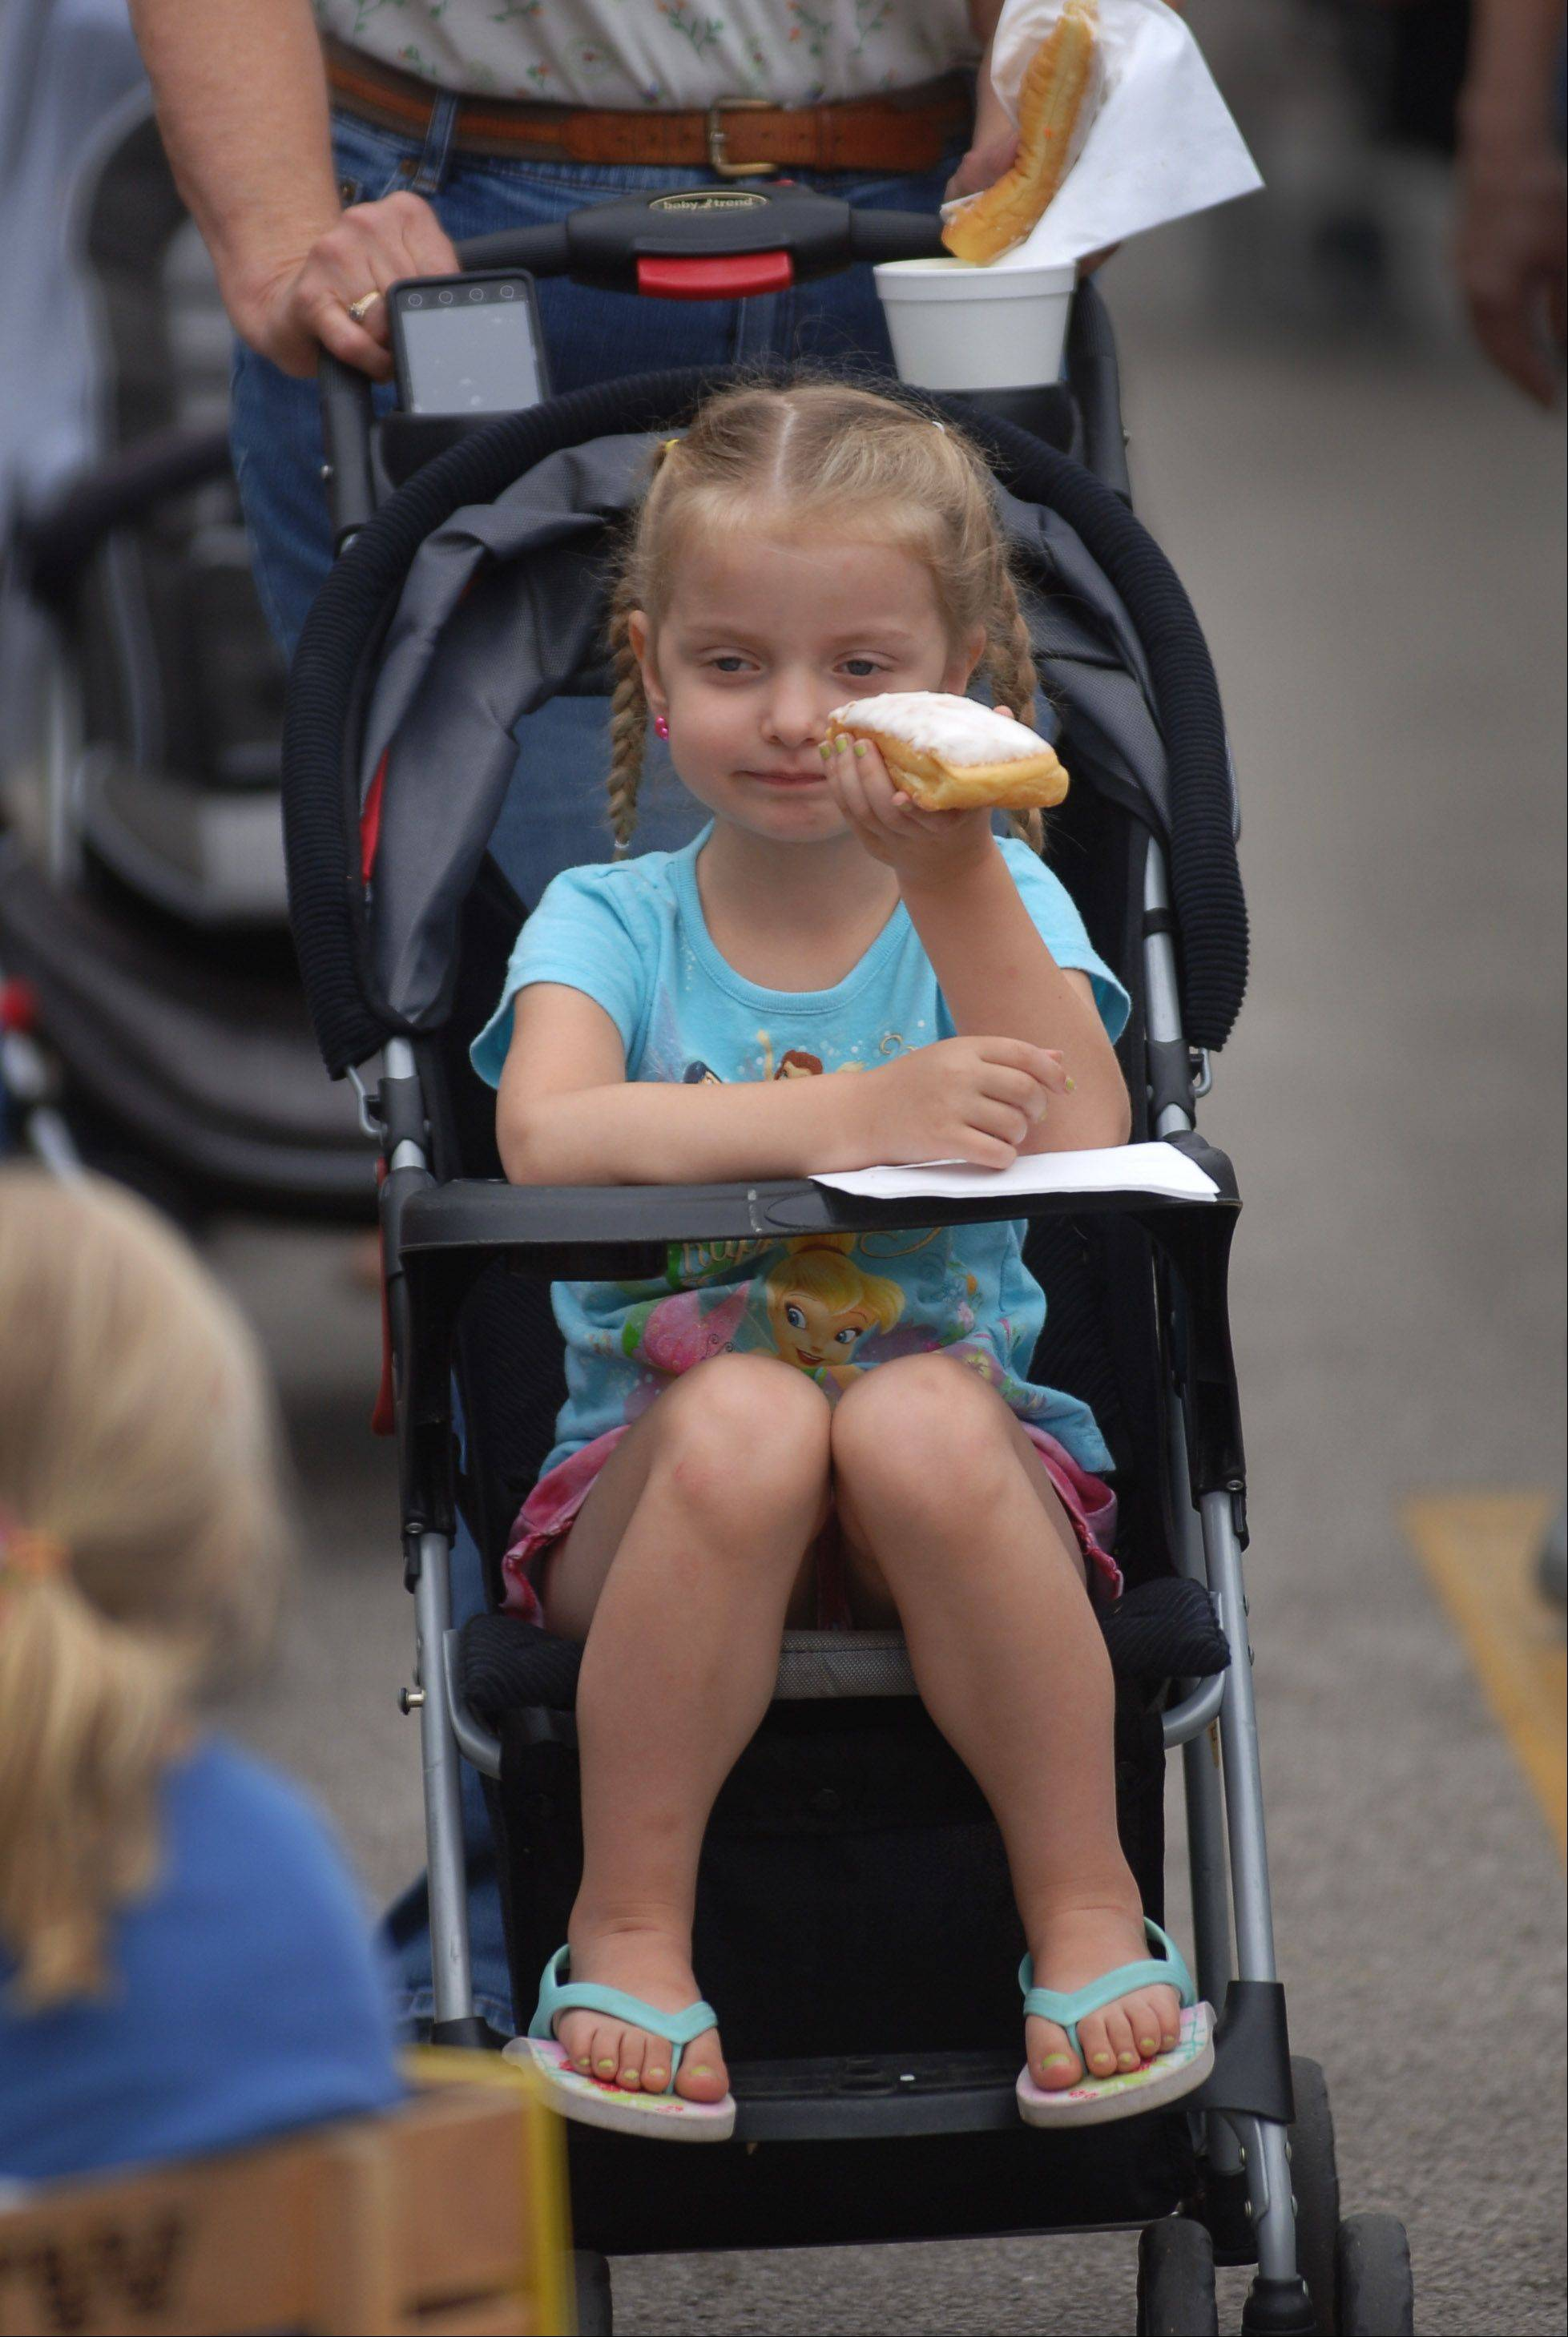 Thursday was the first day of the Libertyville Farmers Market in downtown. Josephine Tilford, 4 of Round Lake Beach, gets ready to dig into a long john doughnut purchased from the St. Lawrence Church booth. The market continues every Thursday morning through October 18.